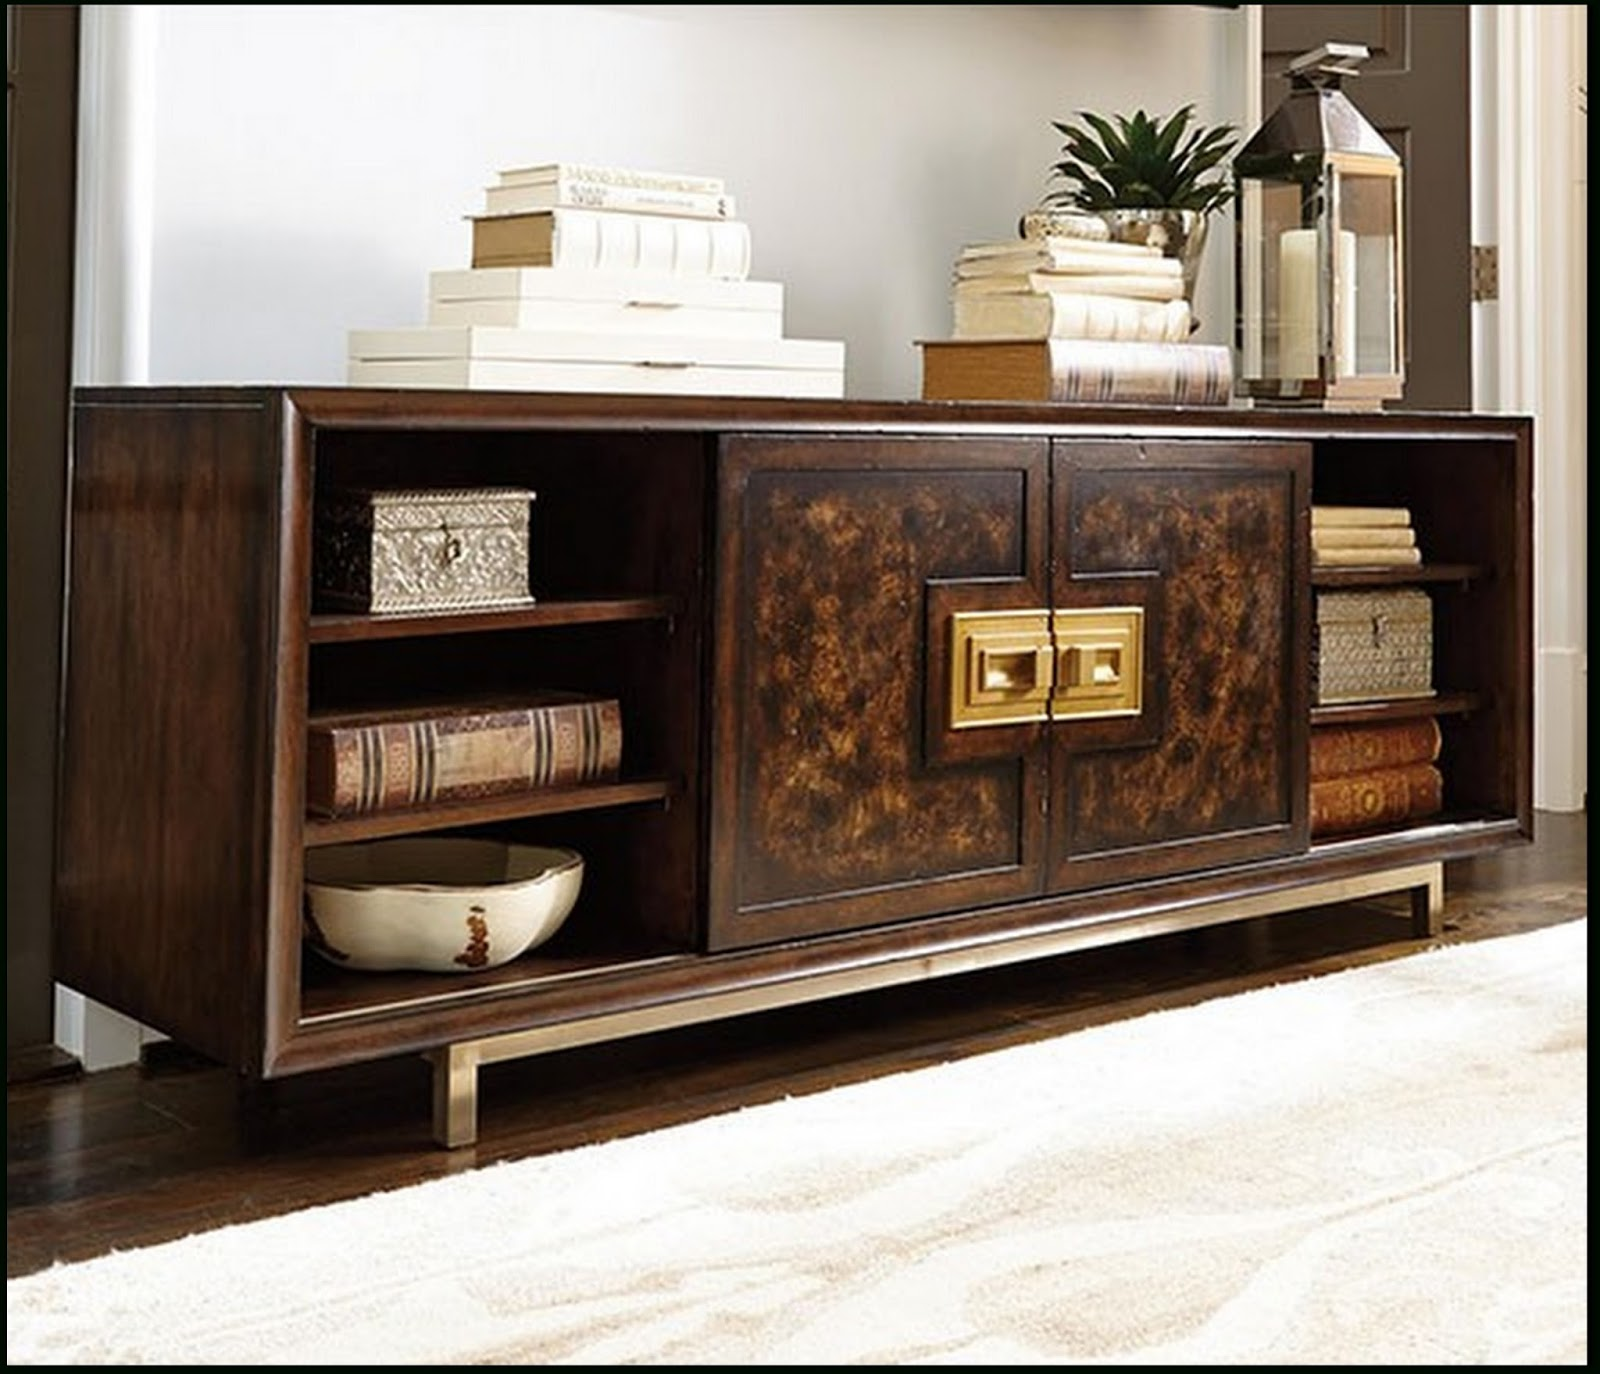 Old hollywood glamour the humphrey bogart collection by for Furniture collection